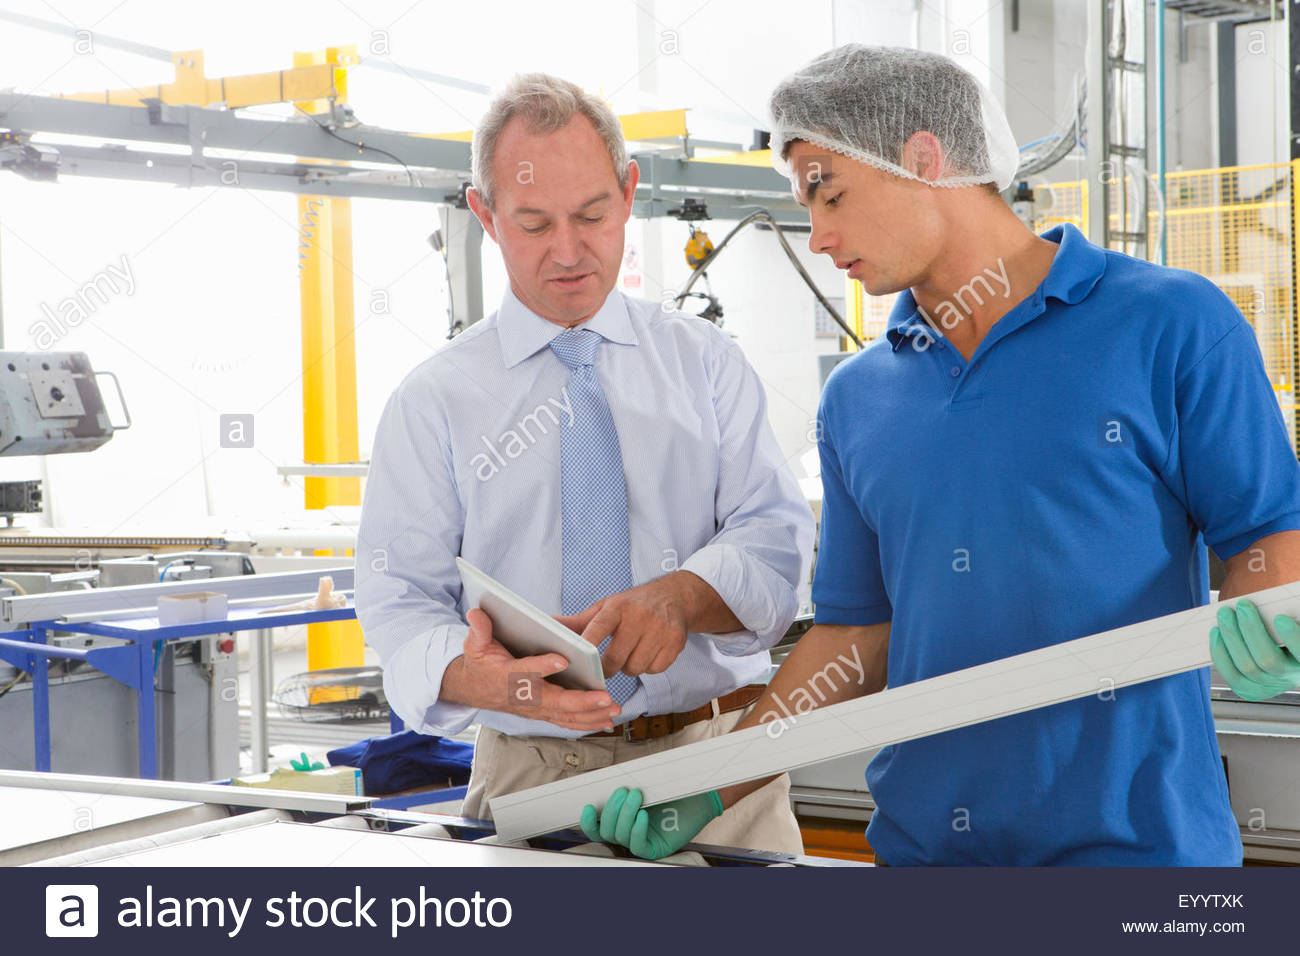 Supervisor training worker apprentice with digital tablet on solar panel factory floor production line - Stock Image